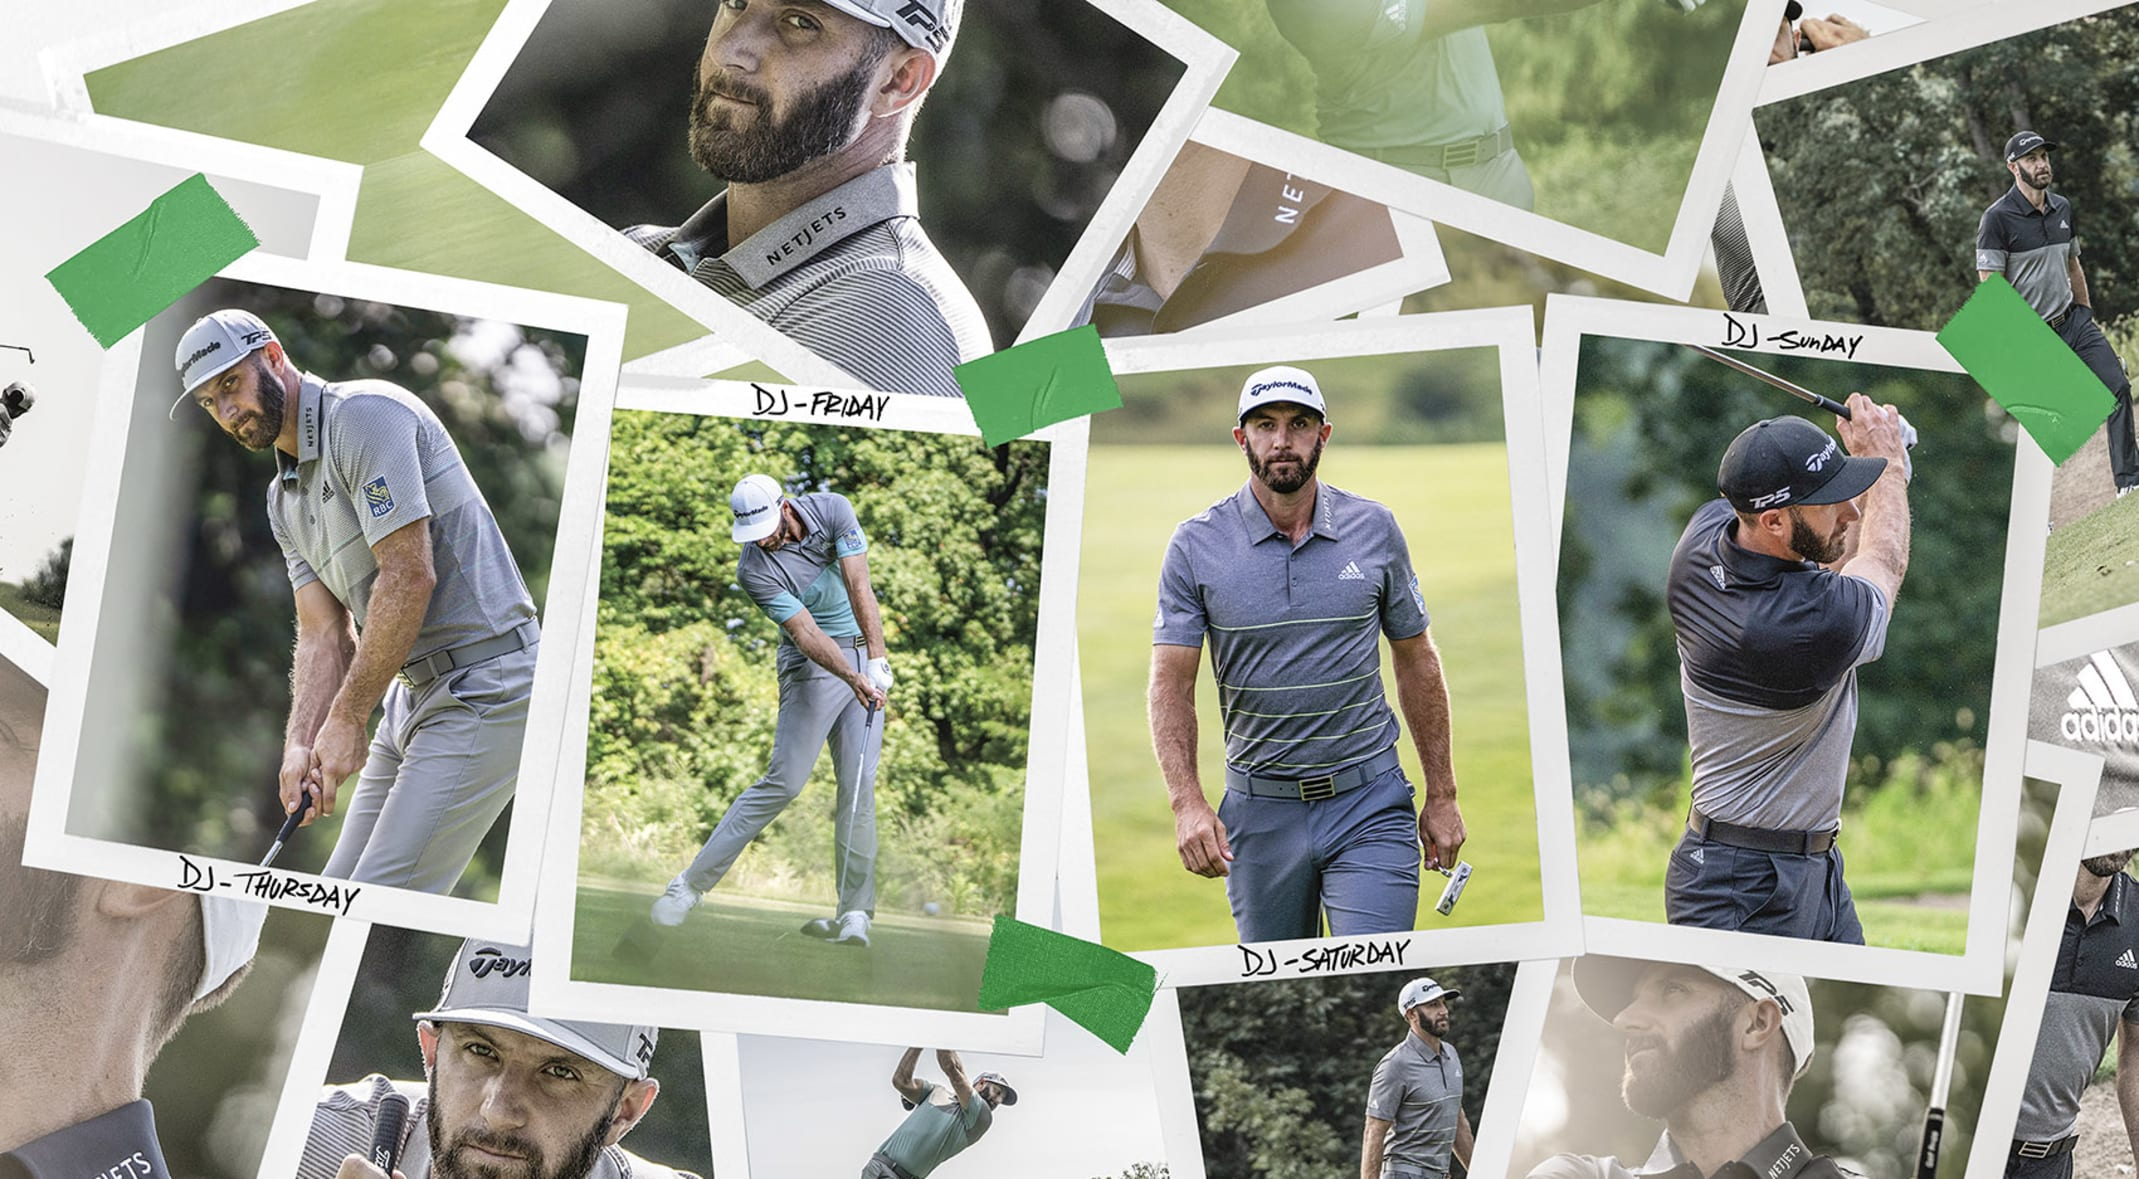 29e9e08bb91 Dark tone-on-tone kits have become signature looks for Dustin Johnson, a